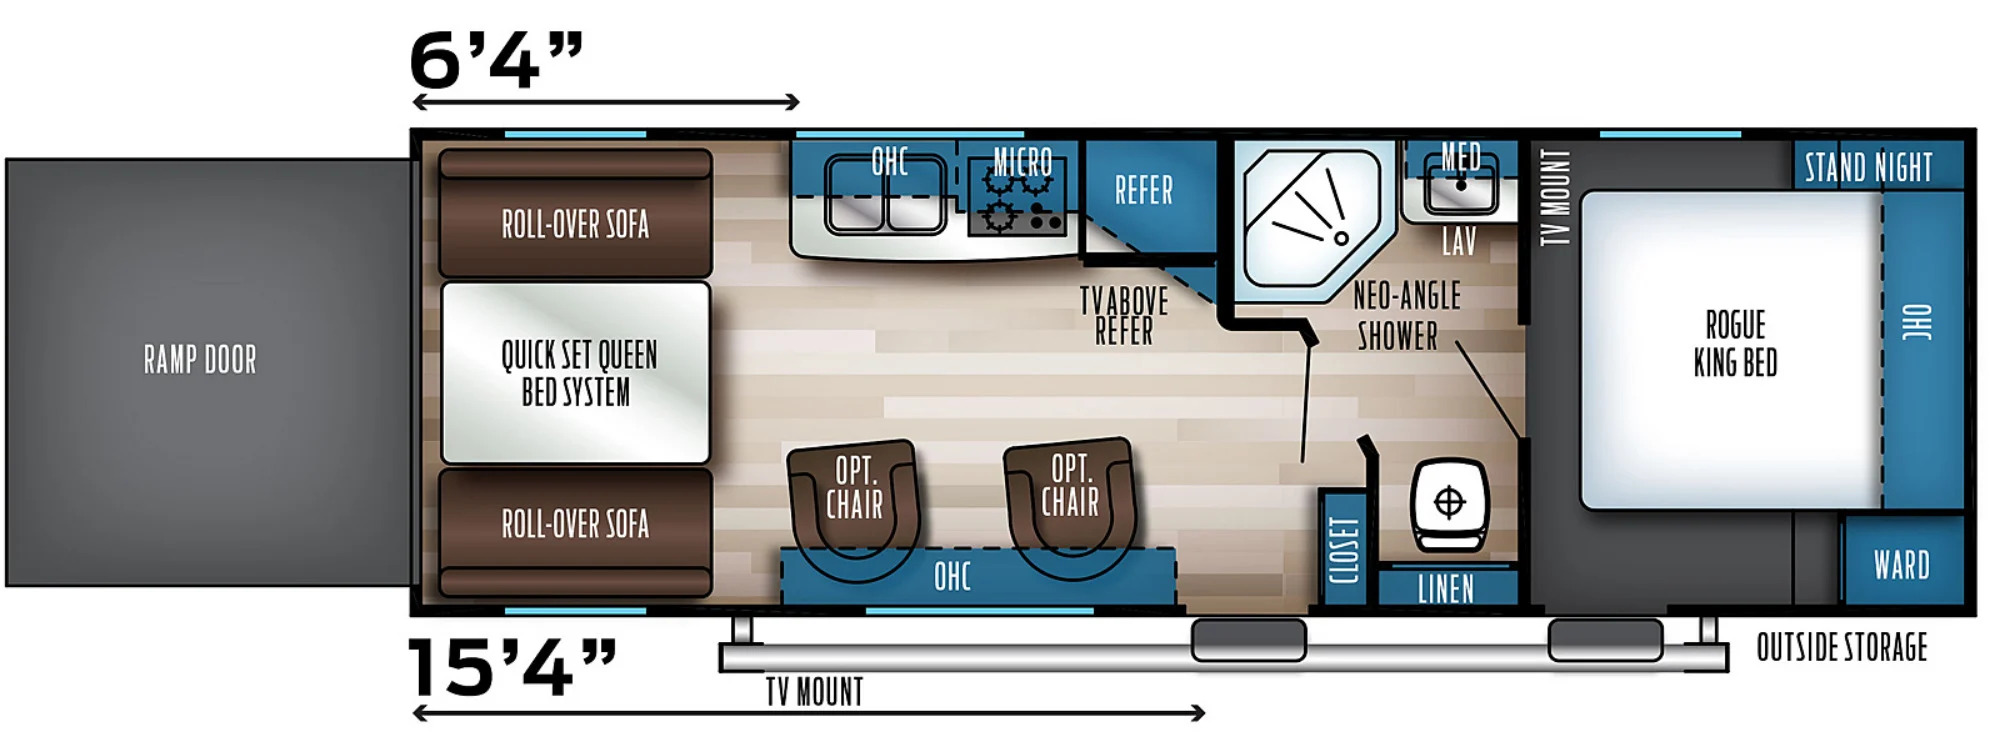 View Floor Plan for 2022 FOREST RIVER ROGUE 25V